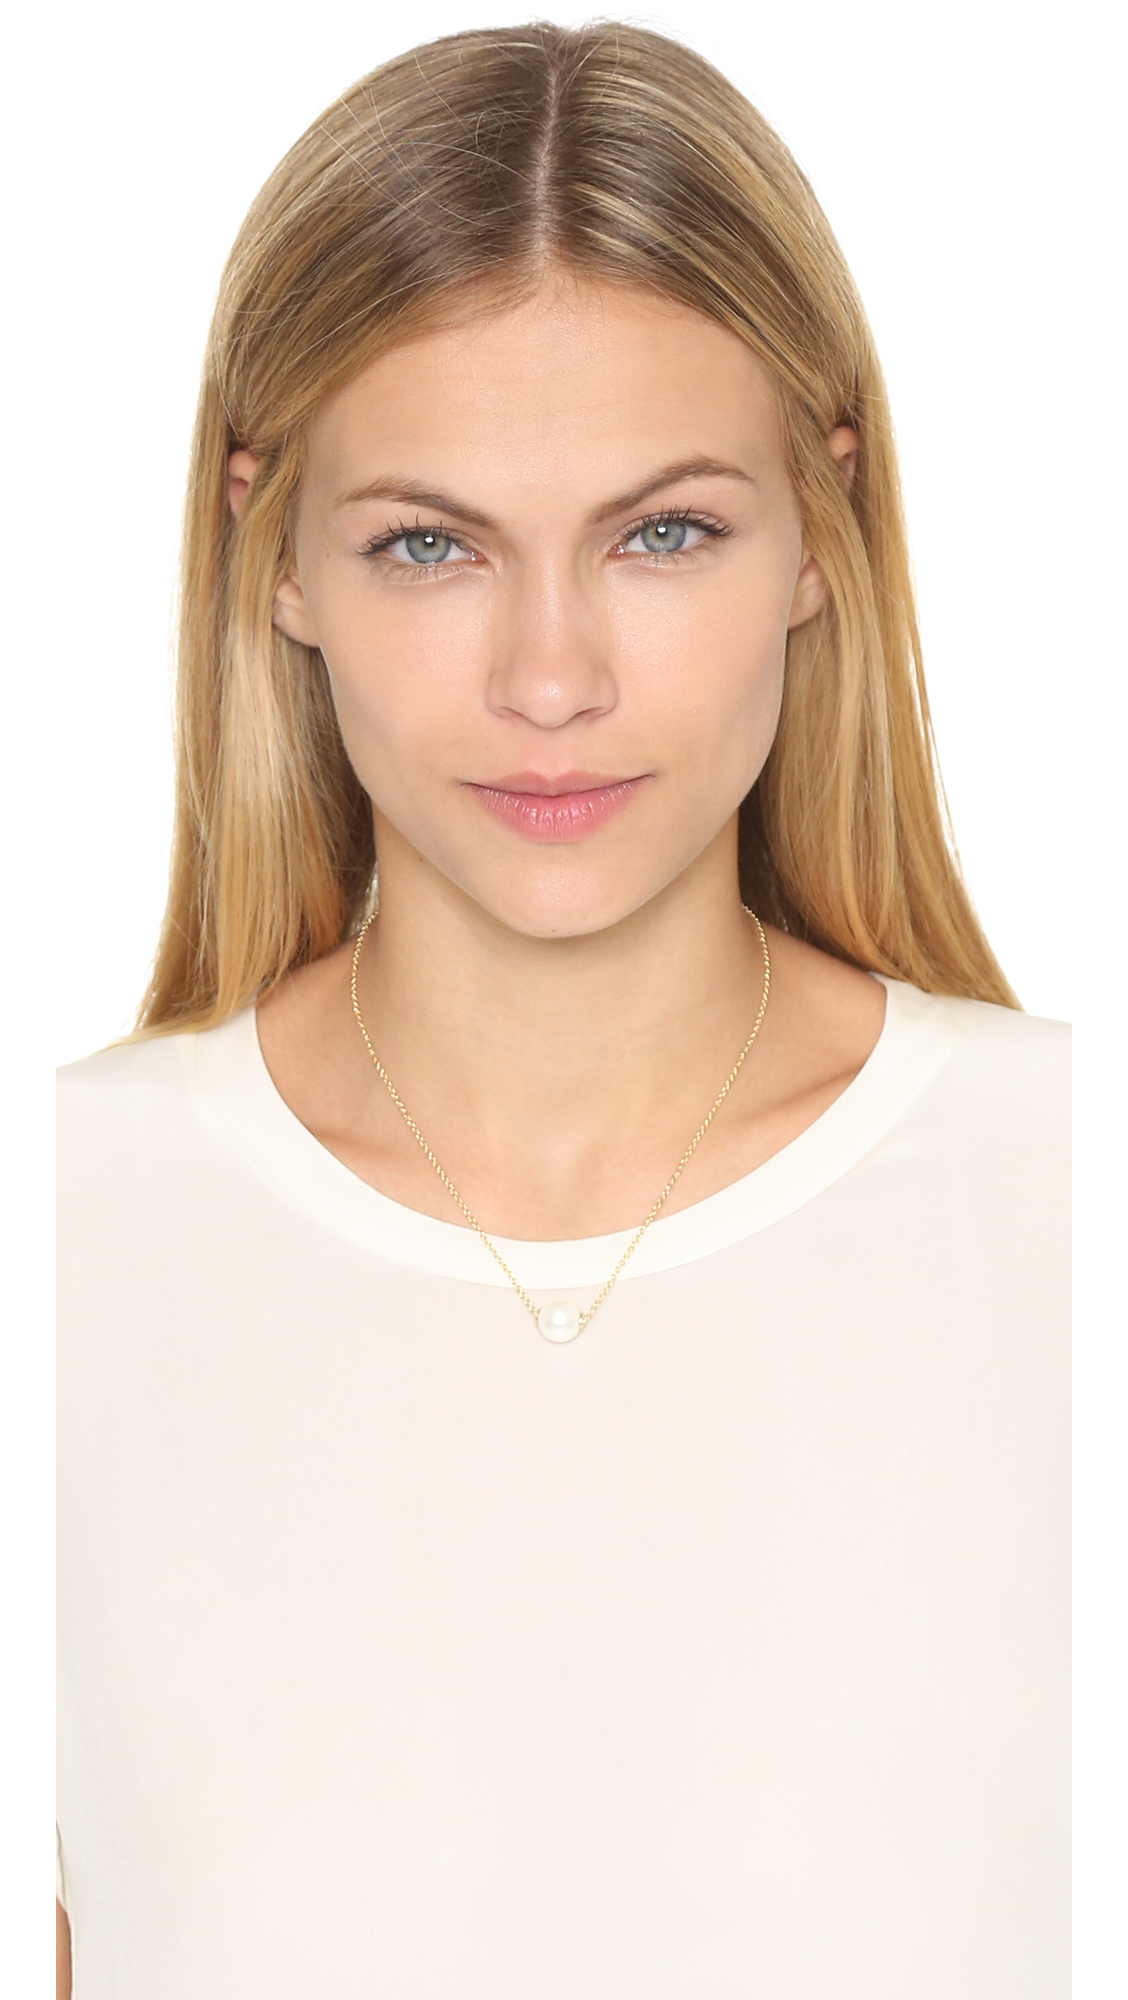 Amber Sceats Solo Necklace - Gold/pearl in Metallic